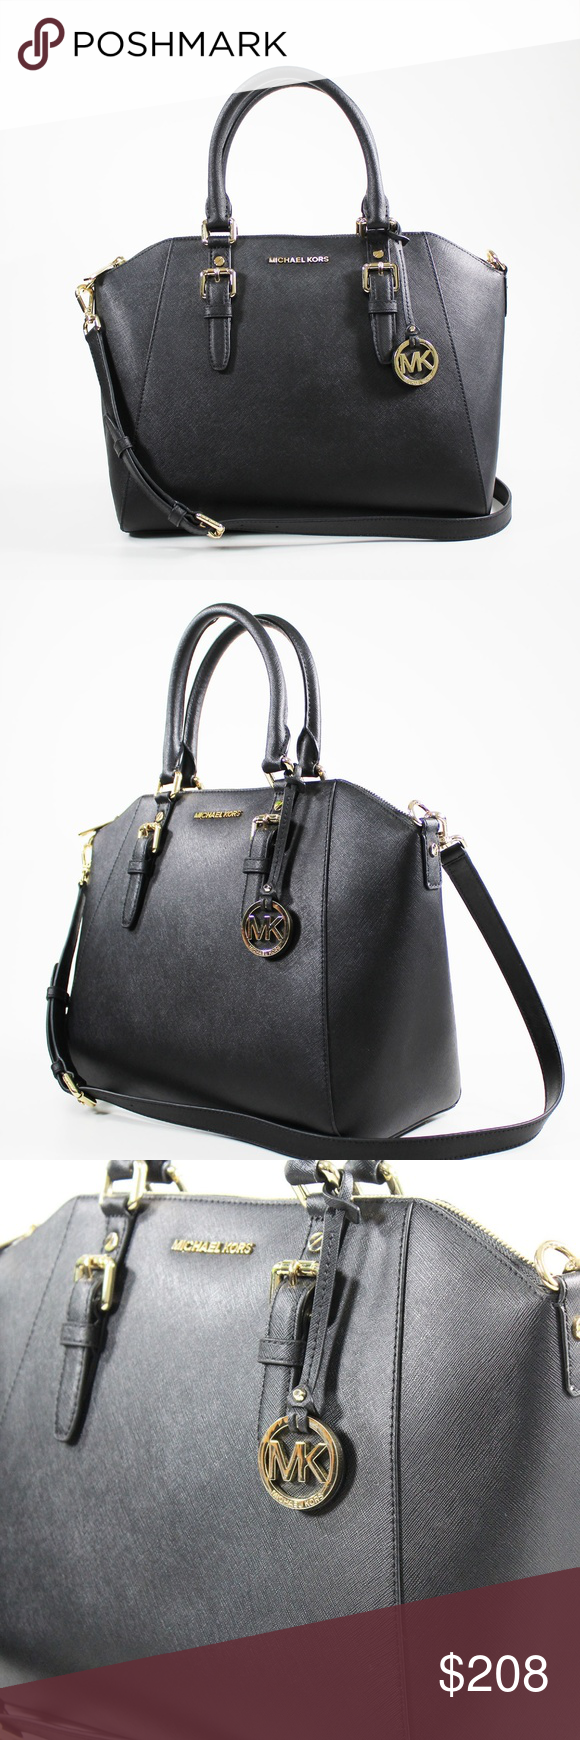 8a8f3053197d MICHAEL KORS Ciara Large Saffiano Black Leather S MICHAEL KORS Ciara Large  Saffiano Black Leather Satchel